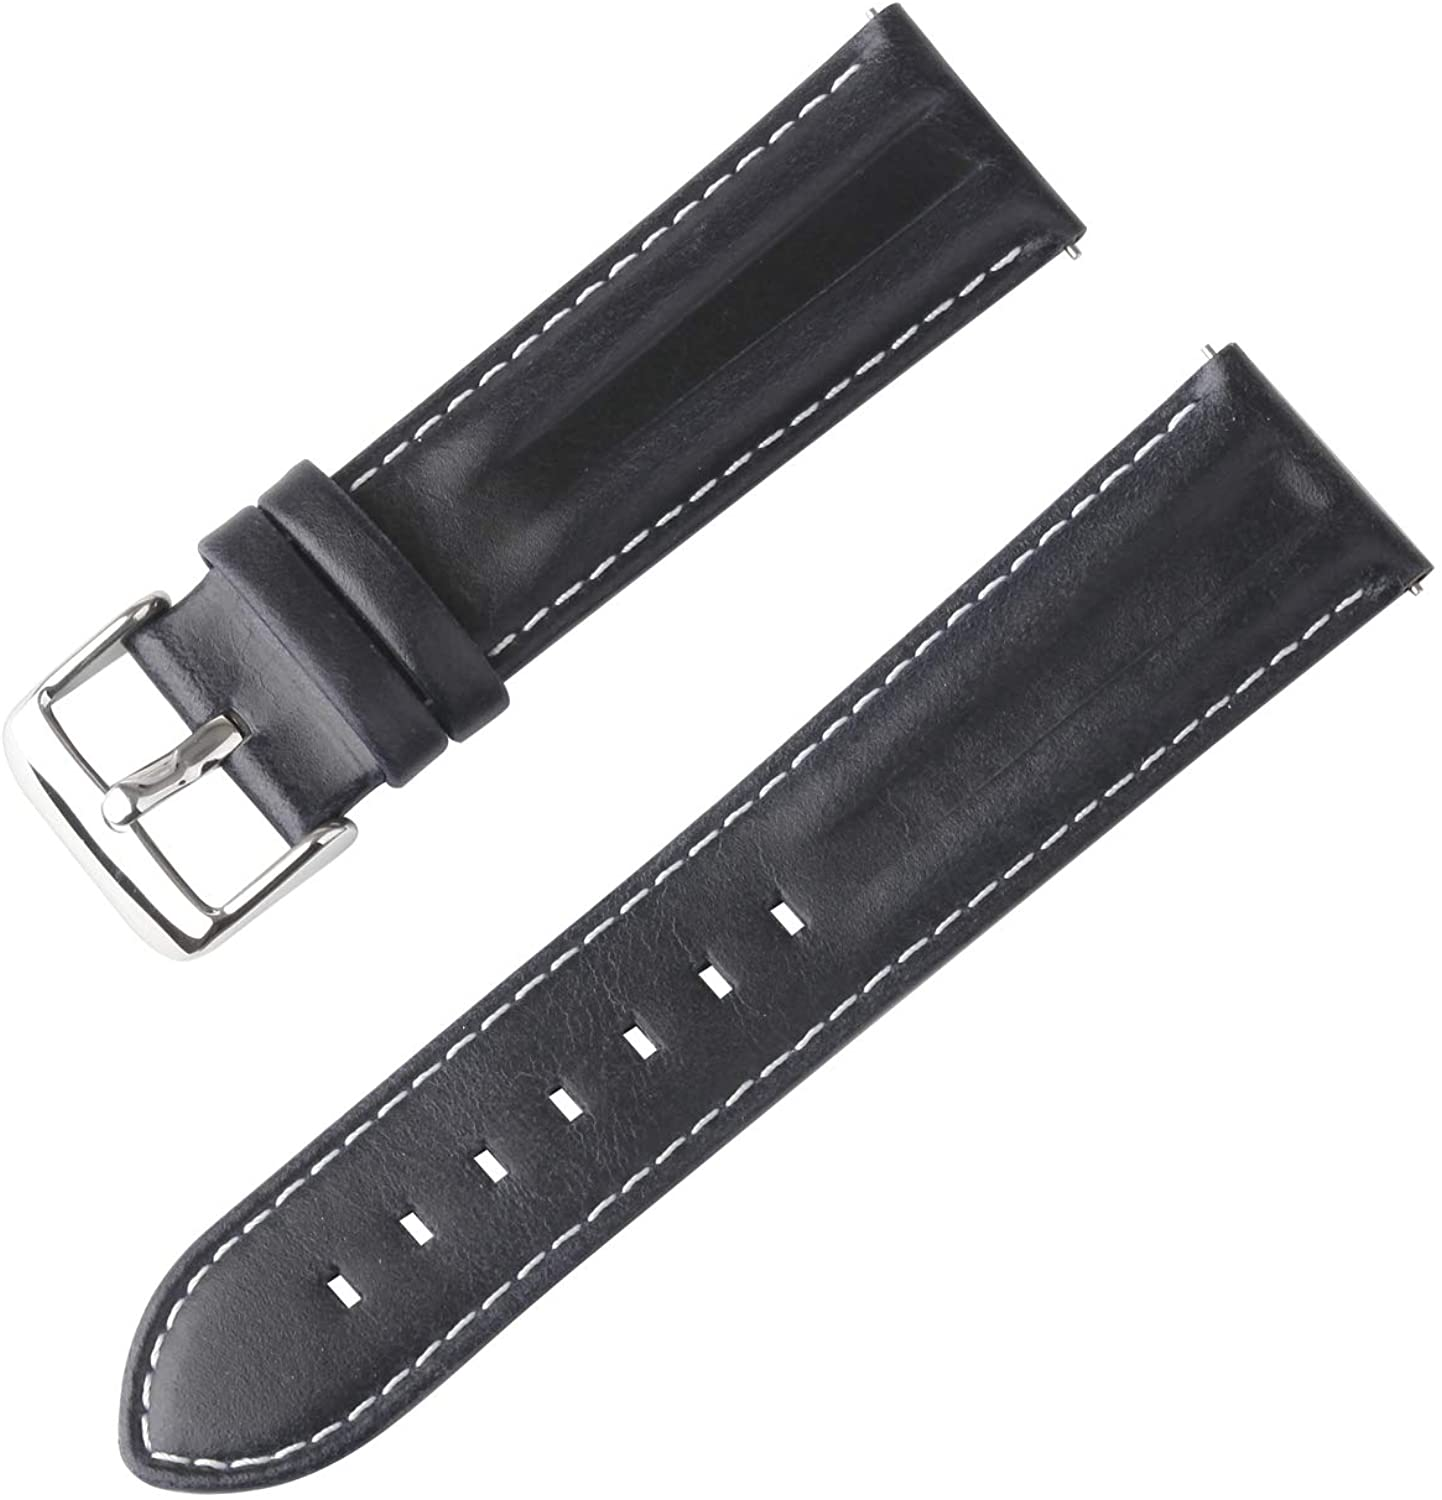 MIRDAUH Quick Release Indentation Vintage Genuine Leather Watch Bands Soft Leather Watch Strap for Men 22mm